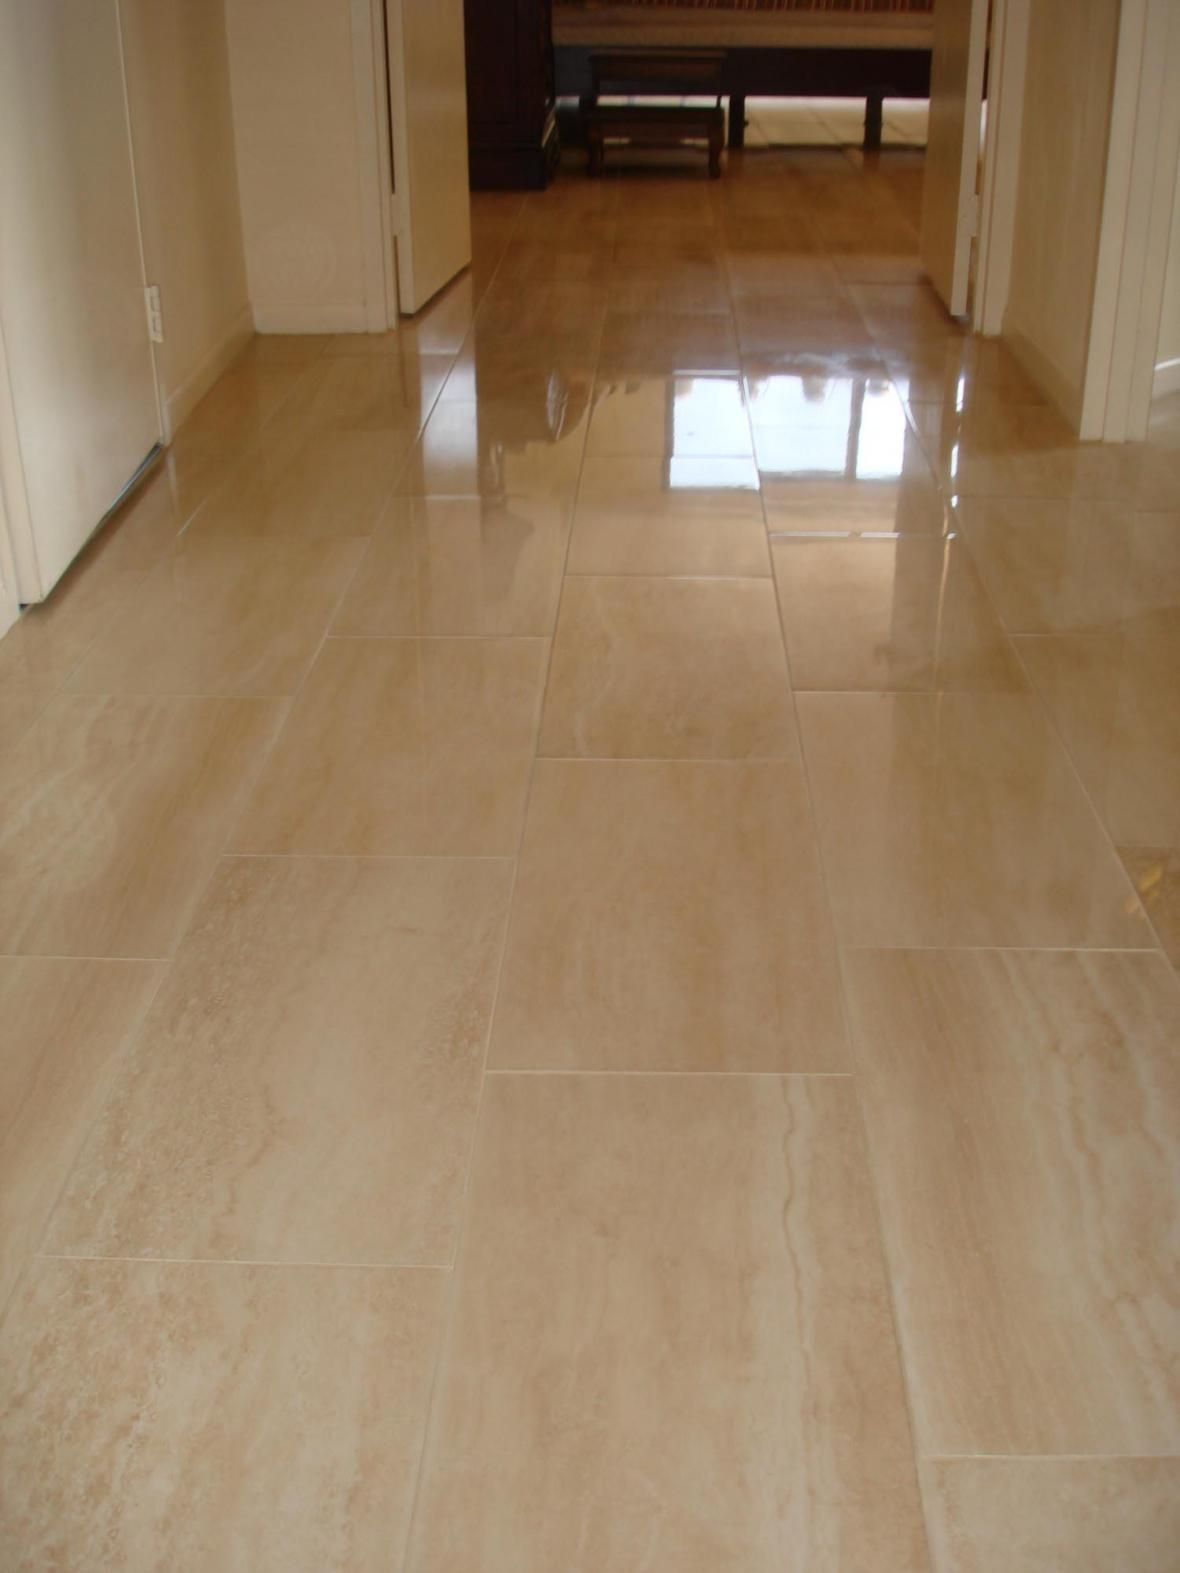 Porcelain kitchen floor tile - Porcelain Flooring Porcelain Tile Floor In Hallway